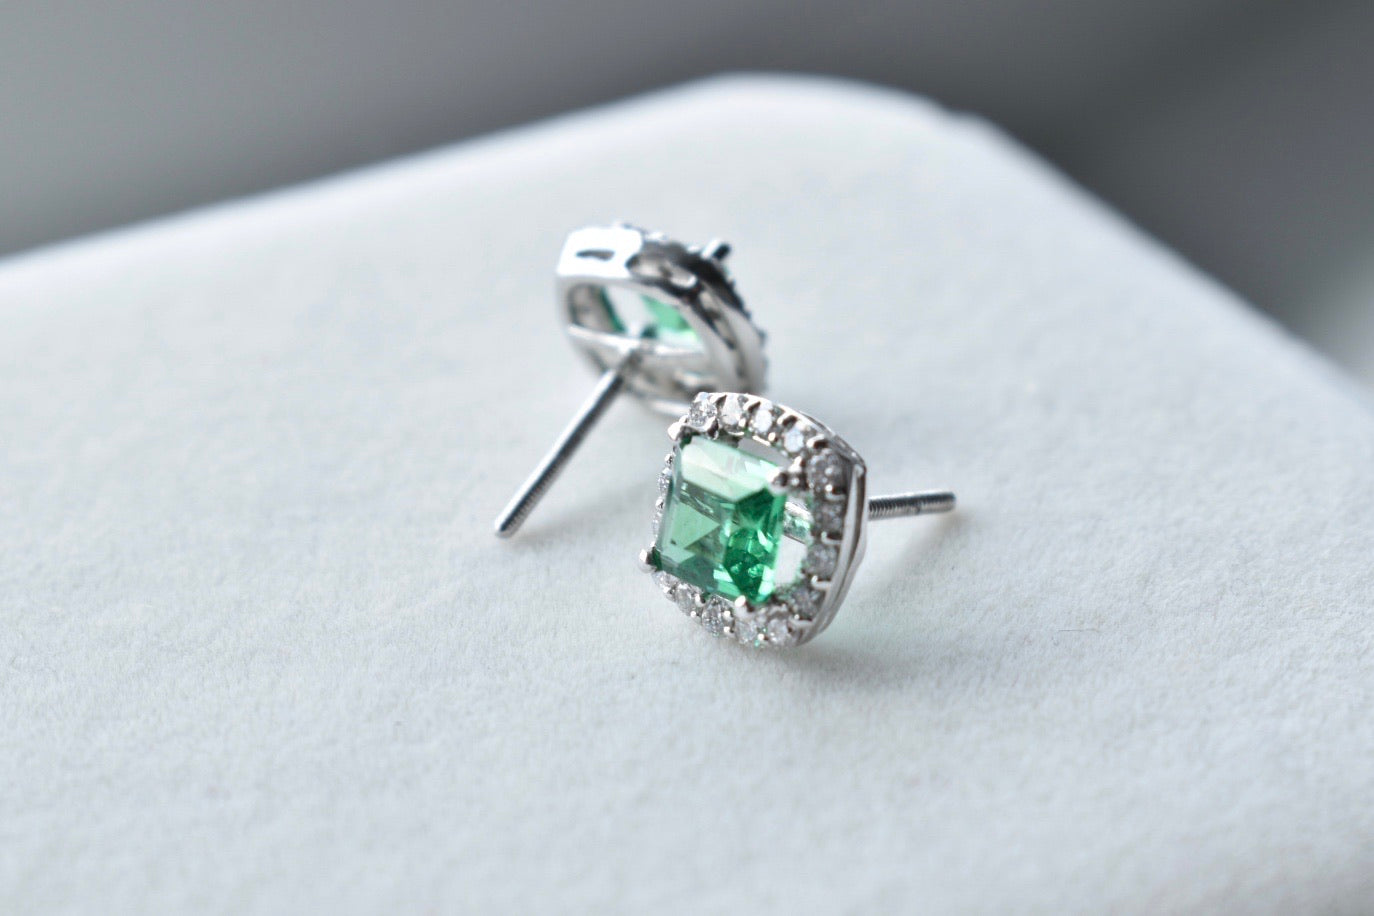 Lab Grown Princess-Cut Emerald Stud Earrings with Diamond Halo in 18K White Gold